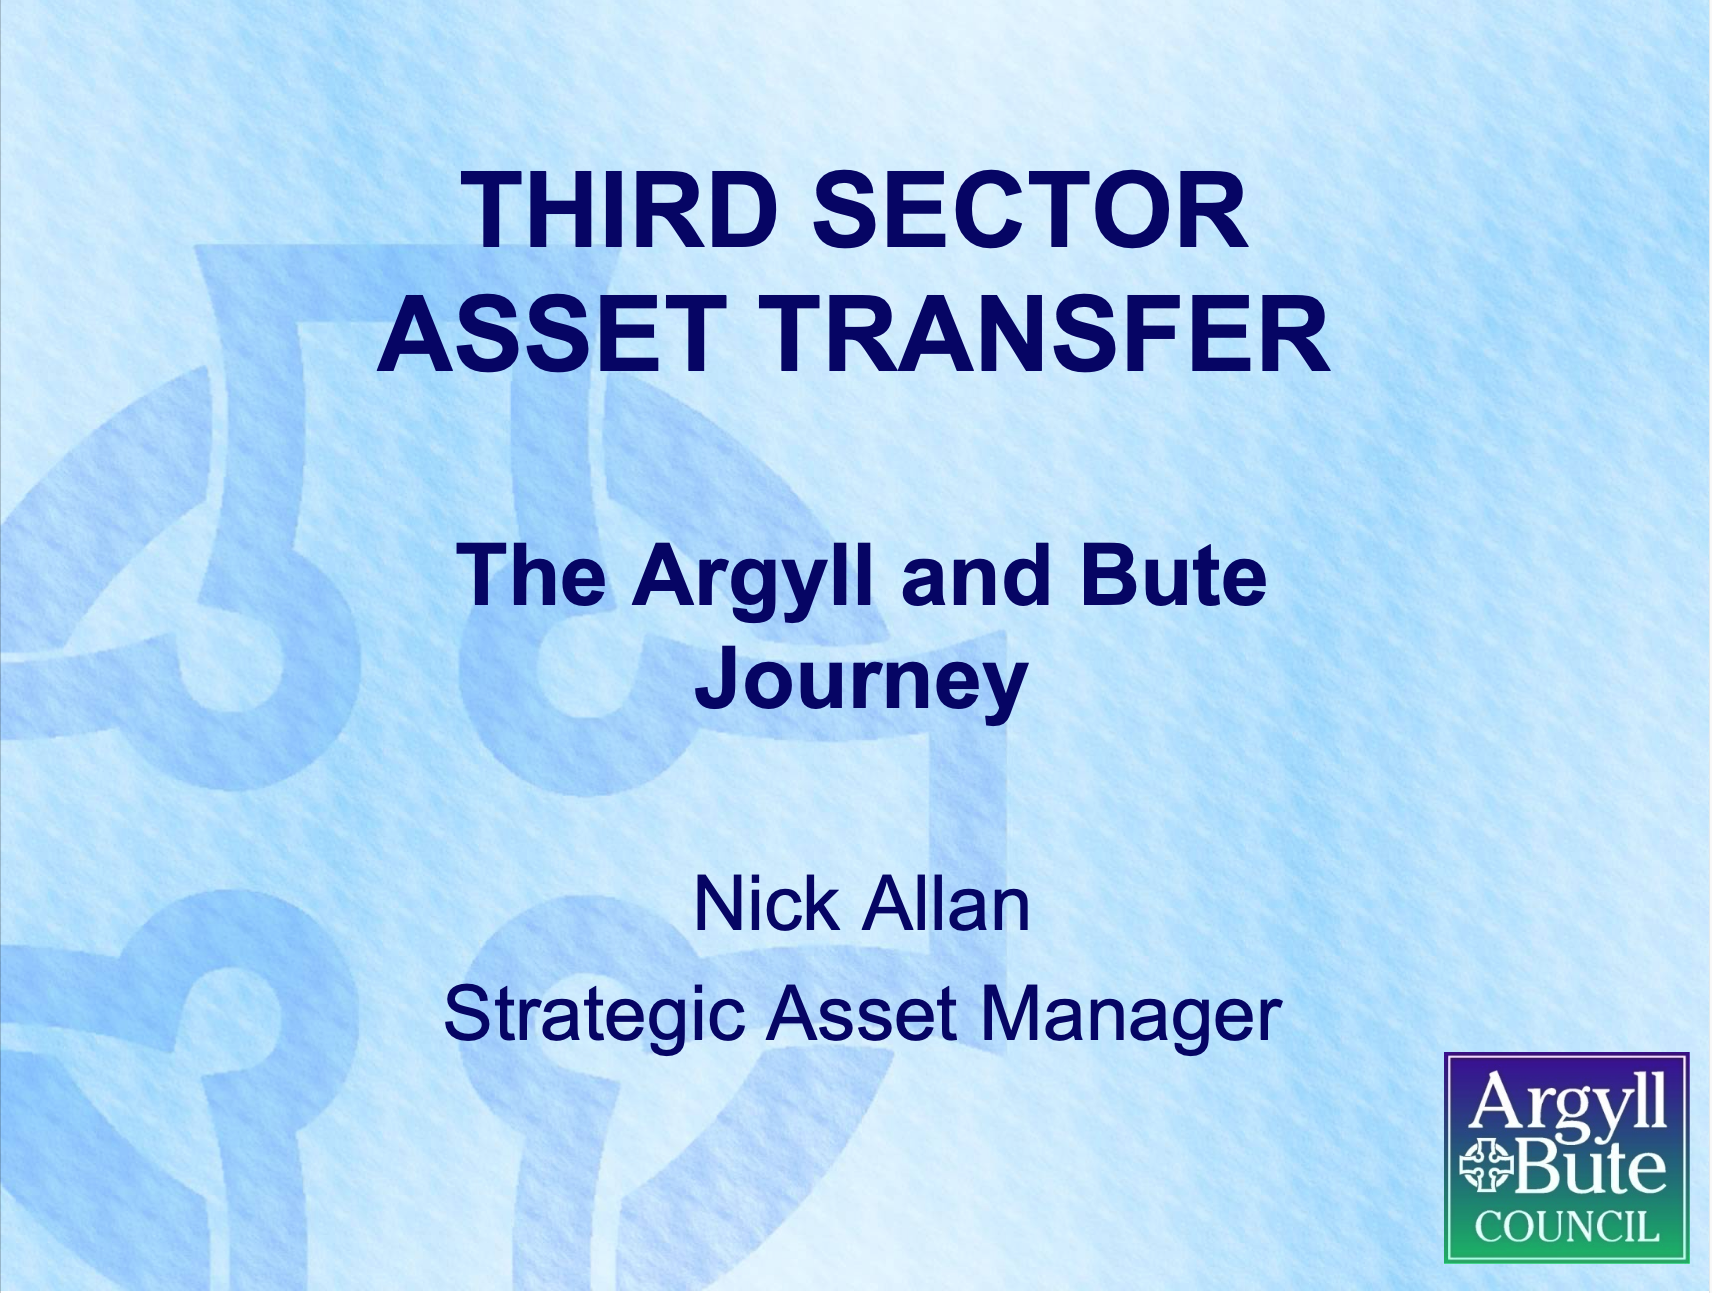 Third Sector Asset Transfer: The Argyll and Bute Journey: Part 2